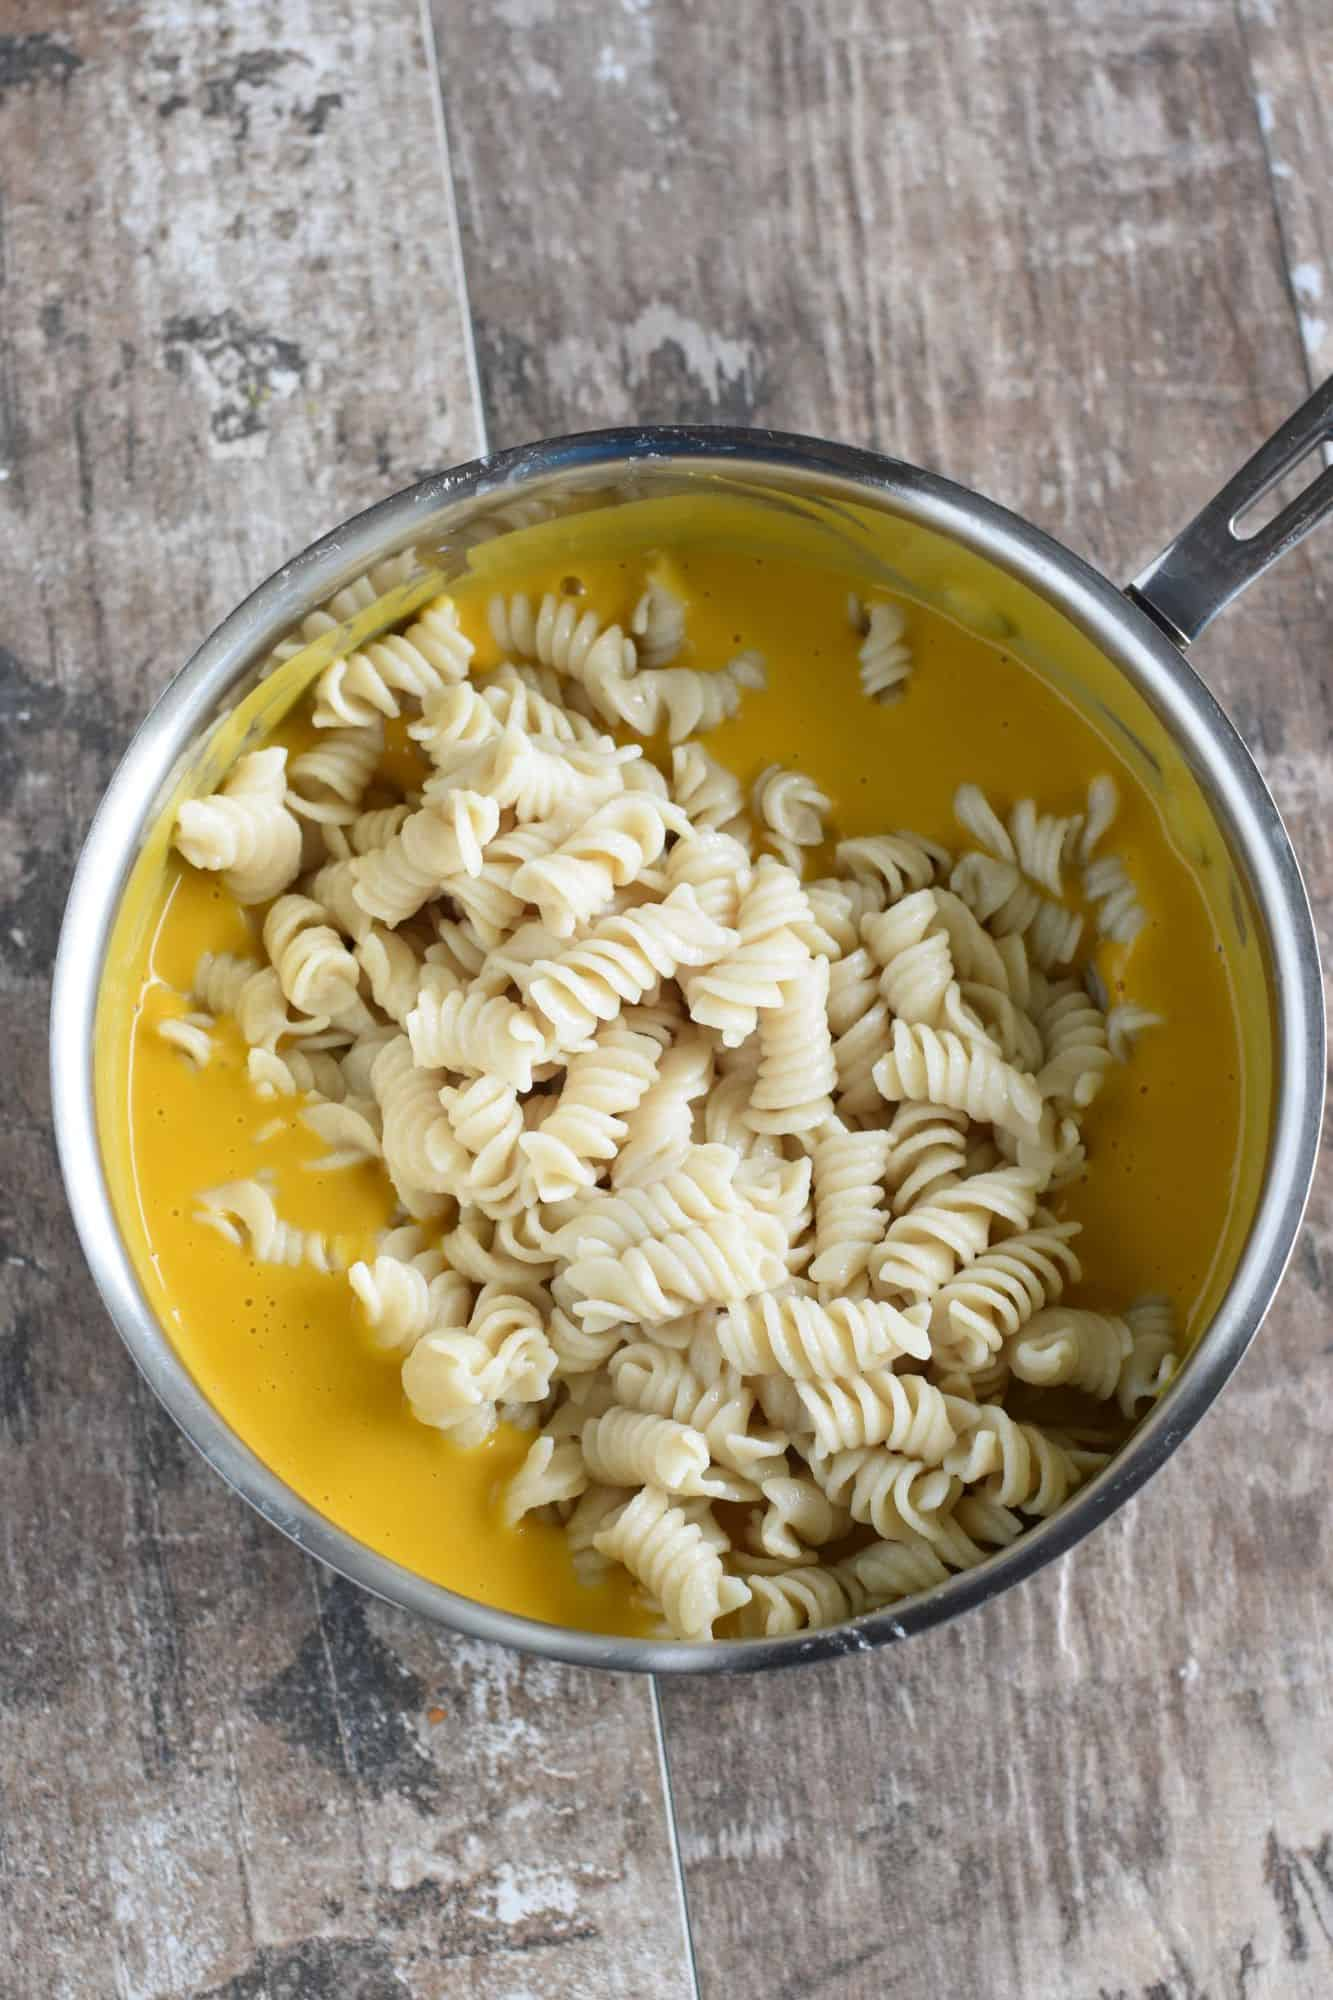 gluten-free pasta added to saucepan with cooked pumpkin sauce